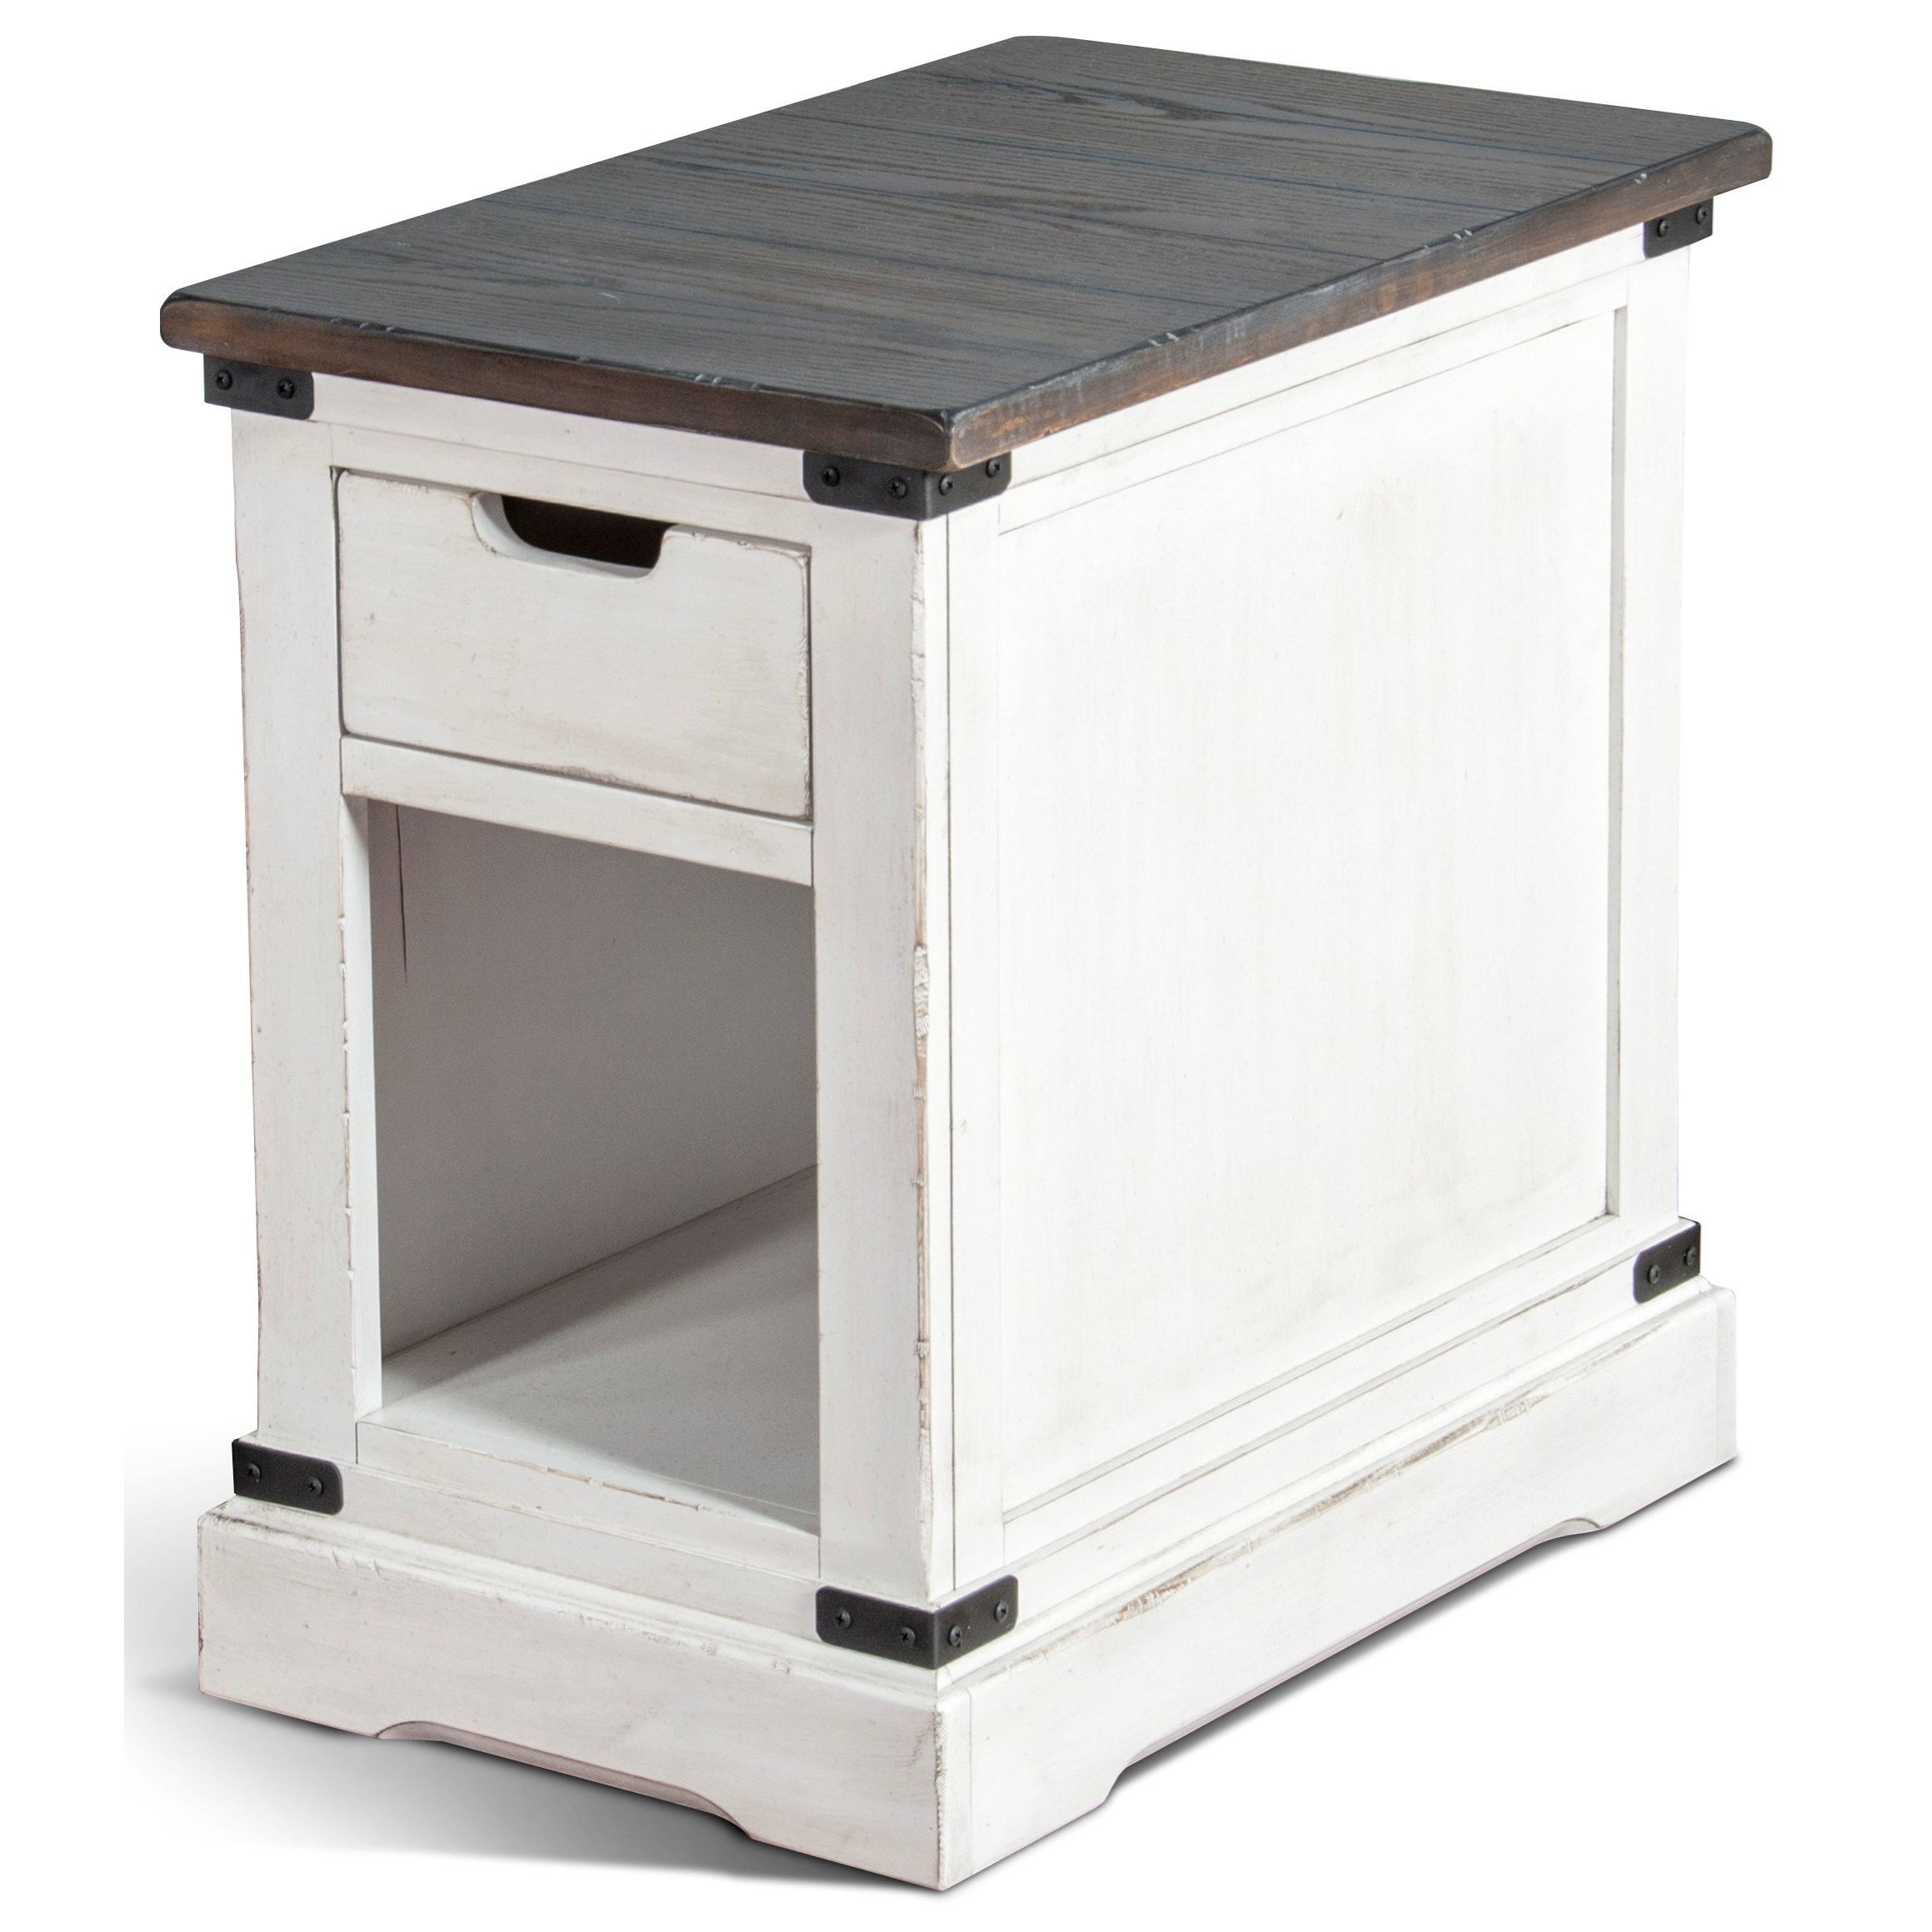 3270 Chair Side Table by Sunny Designs at Factory Direct Furniture